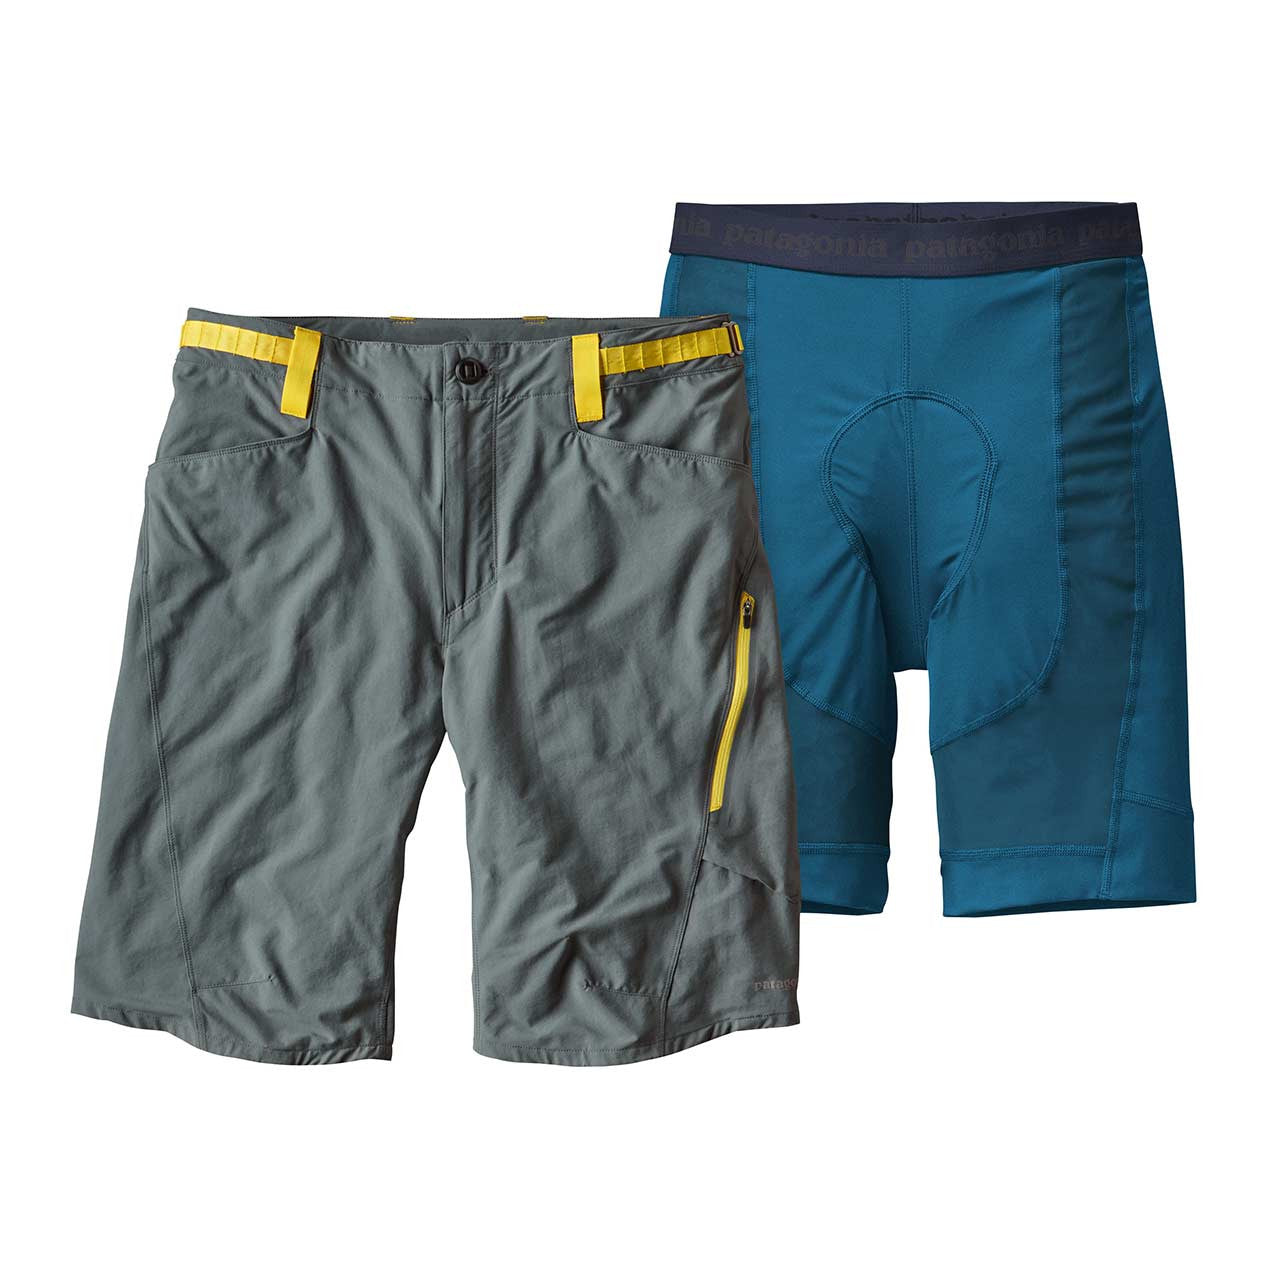 Patagonia_M's Dirt Craft Bike Shorts_Black_L